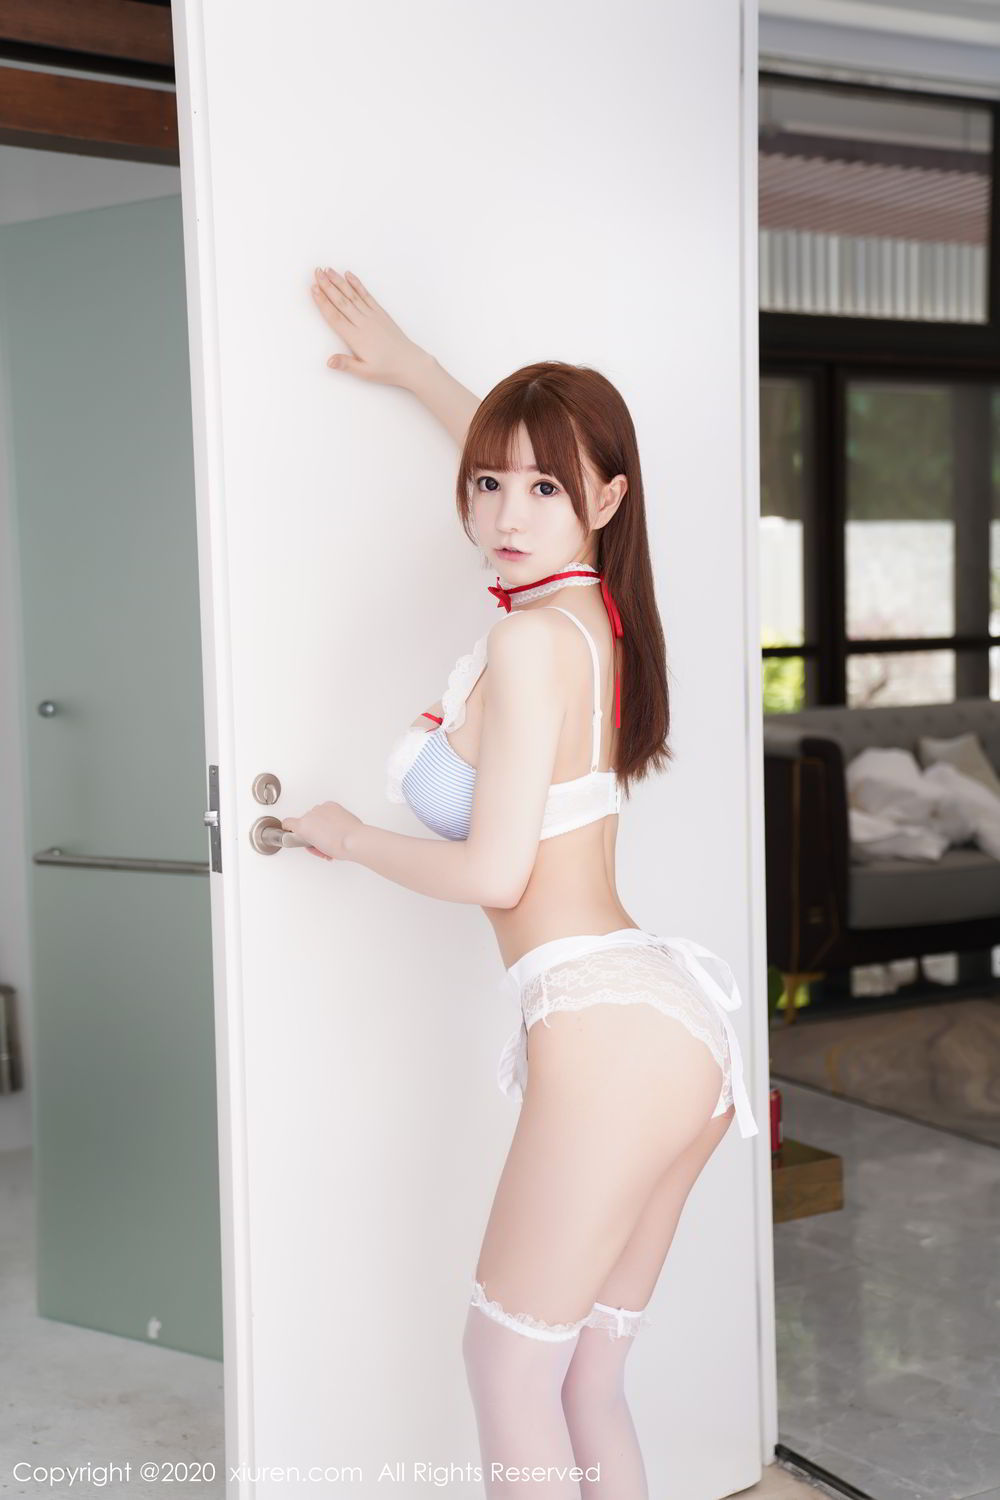 [XiuRen] Vol.2193 Uu Jiang 54P, Baby Face Big Boobs, Cute, UU Jiang, Xiuren